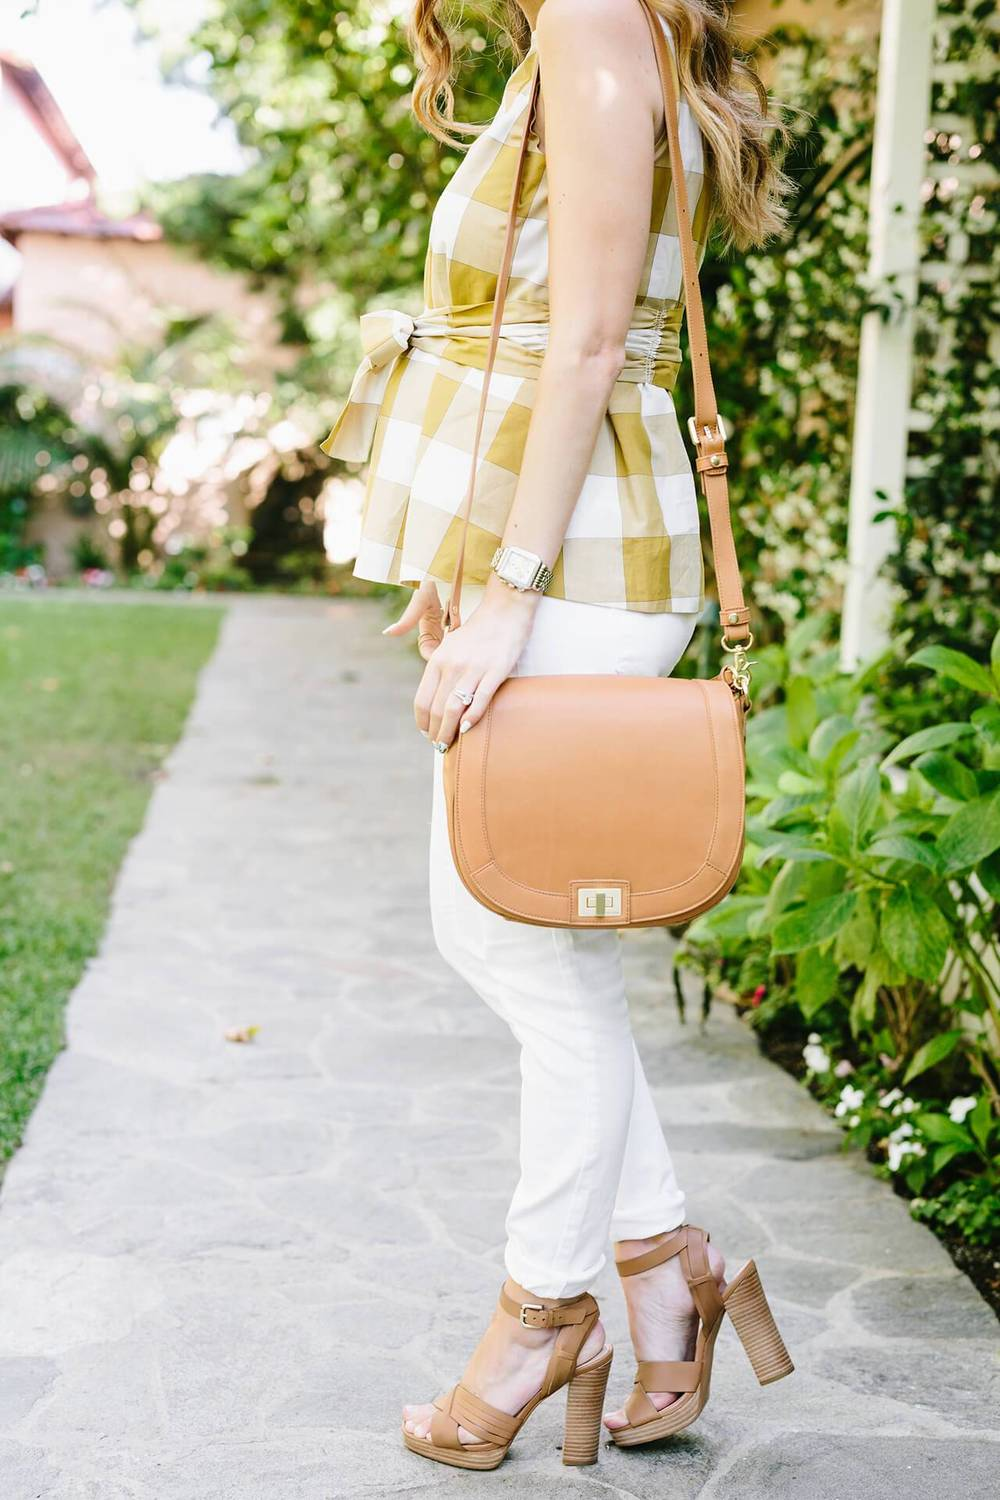 mara_mustard_gingham_top_with_white_jeans_1.jpg